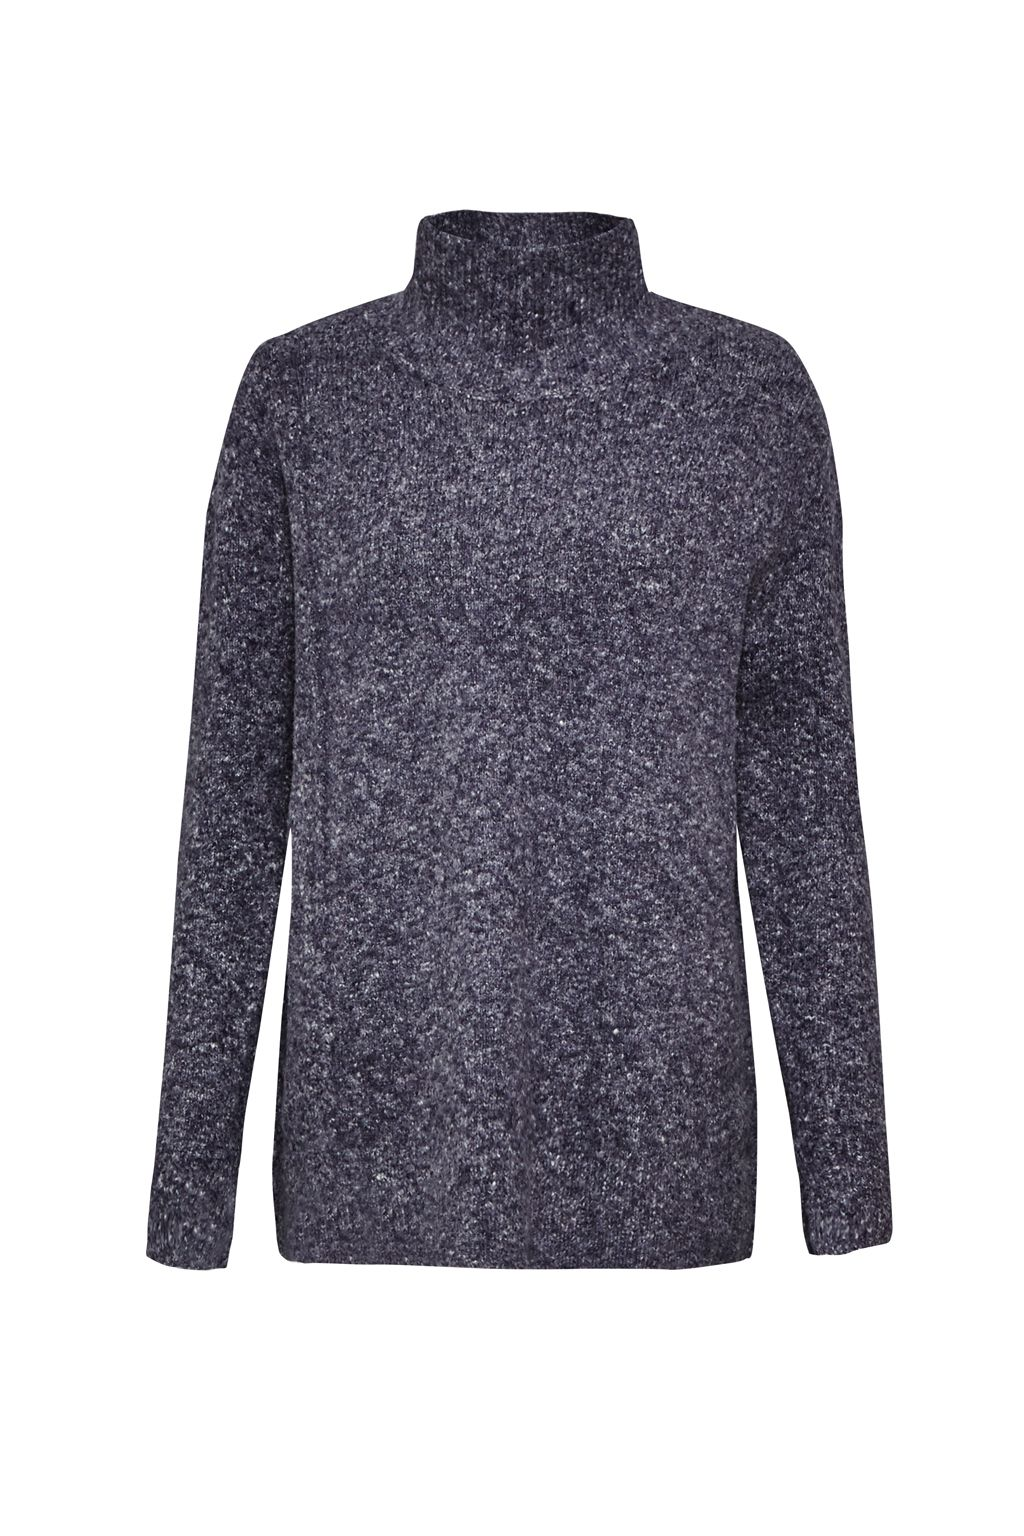 French Connection Autumn RSVP High Neck Jumper Blue